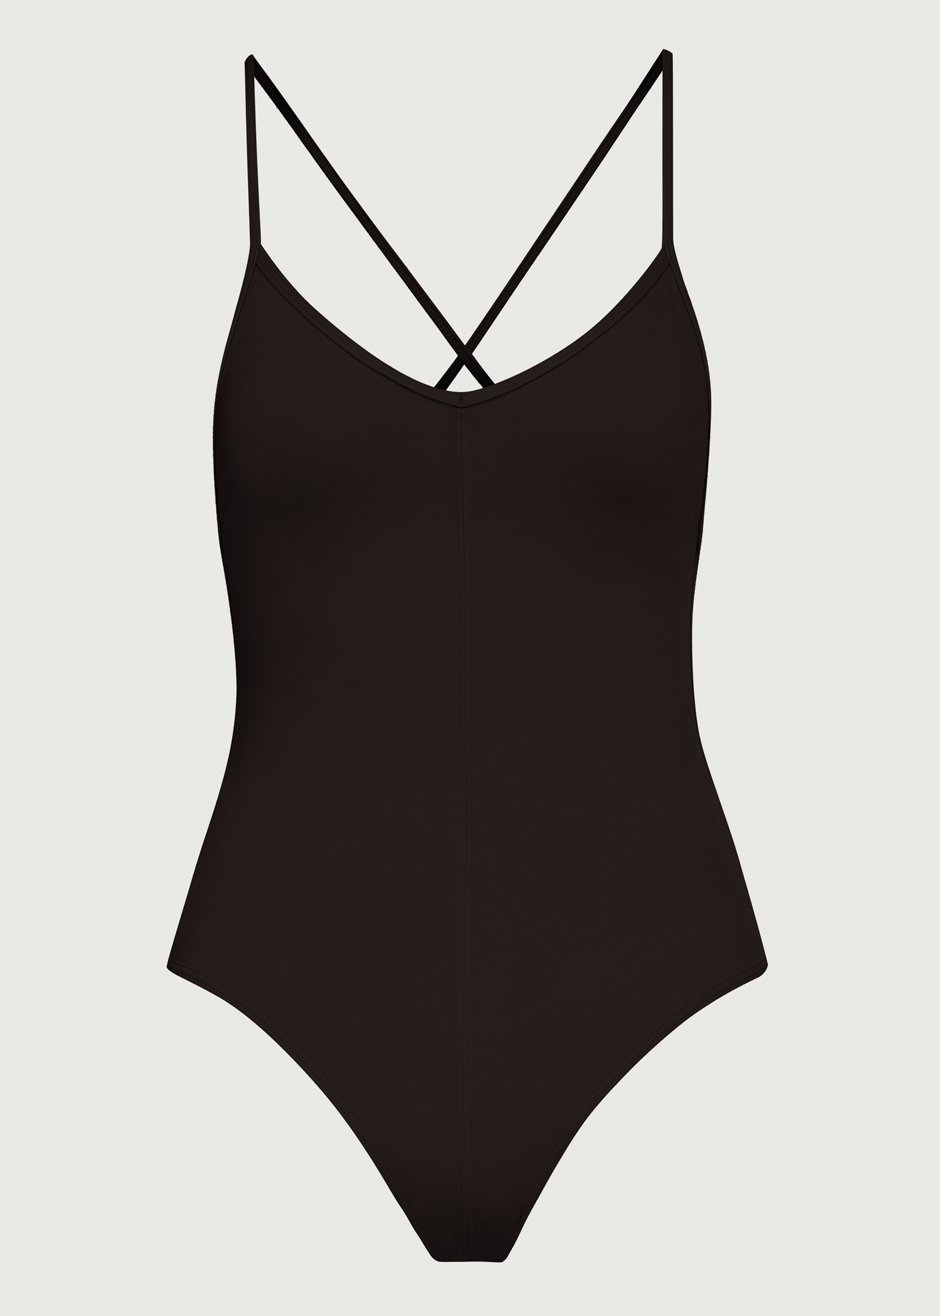 Georgia Coal Black One Piece Swimsuit by Her Line Australia